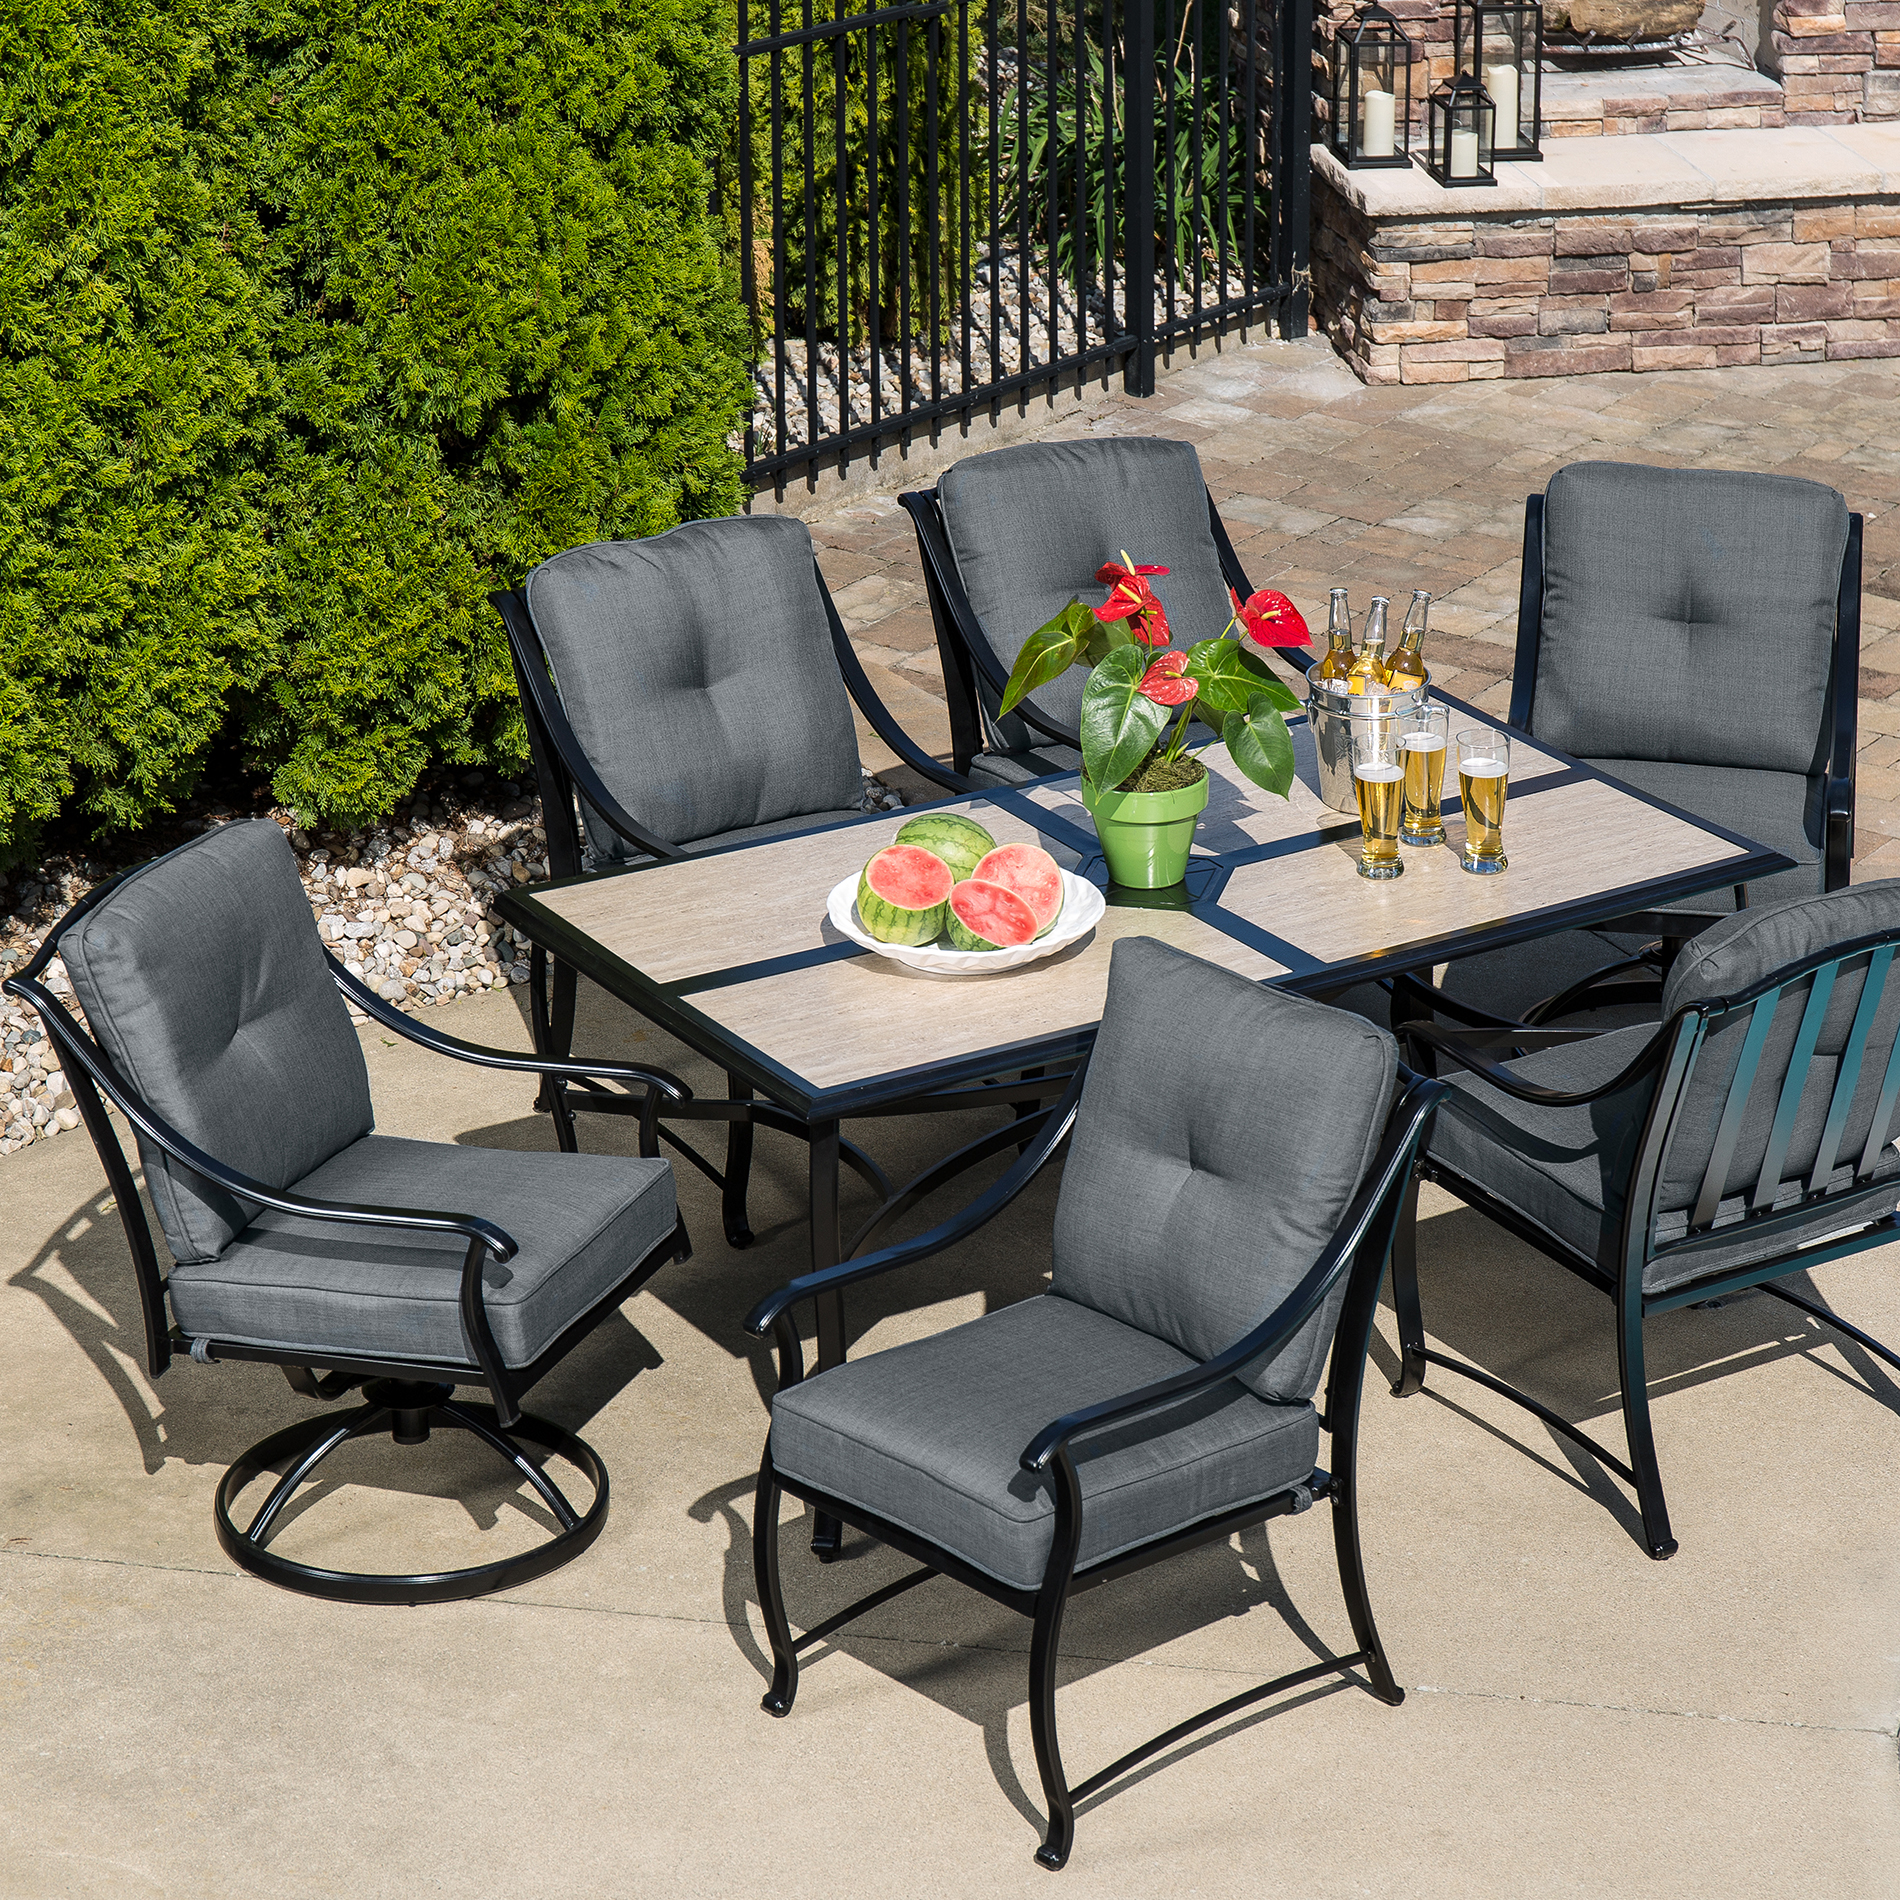 La-boy Outdoor Emerson 7 Pc. Dining Set- Graphite